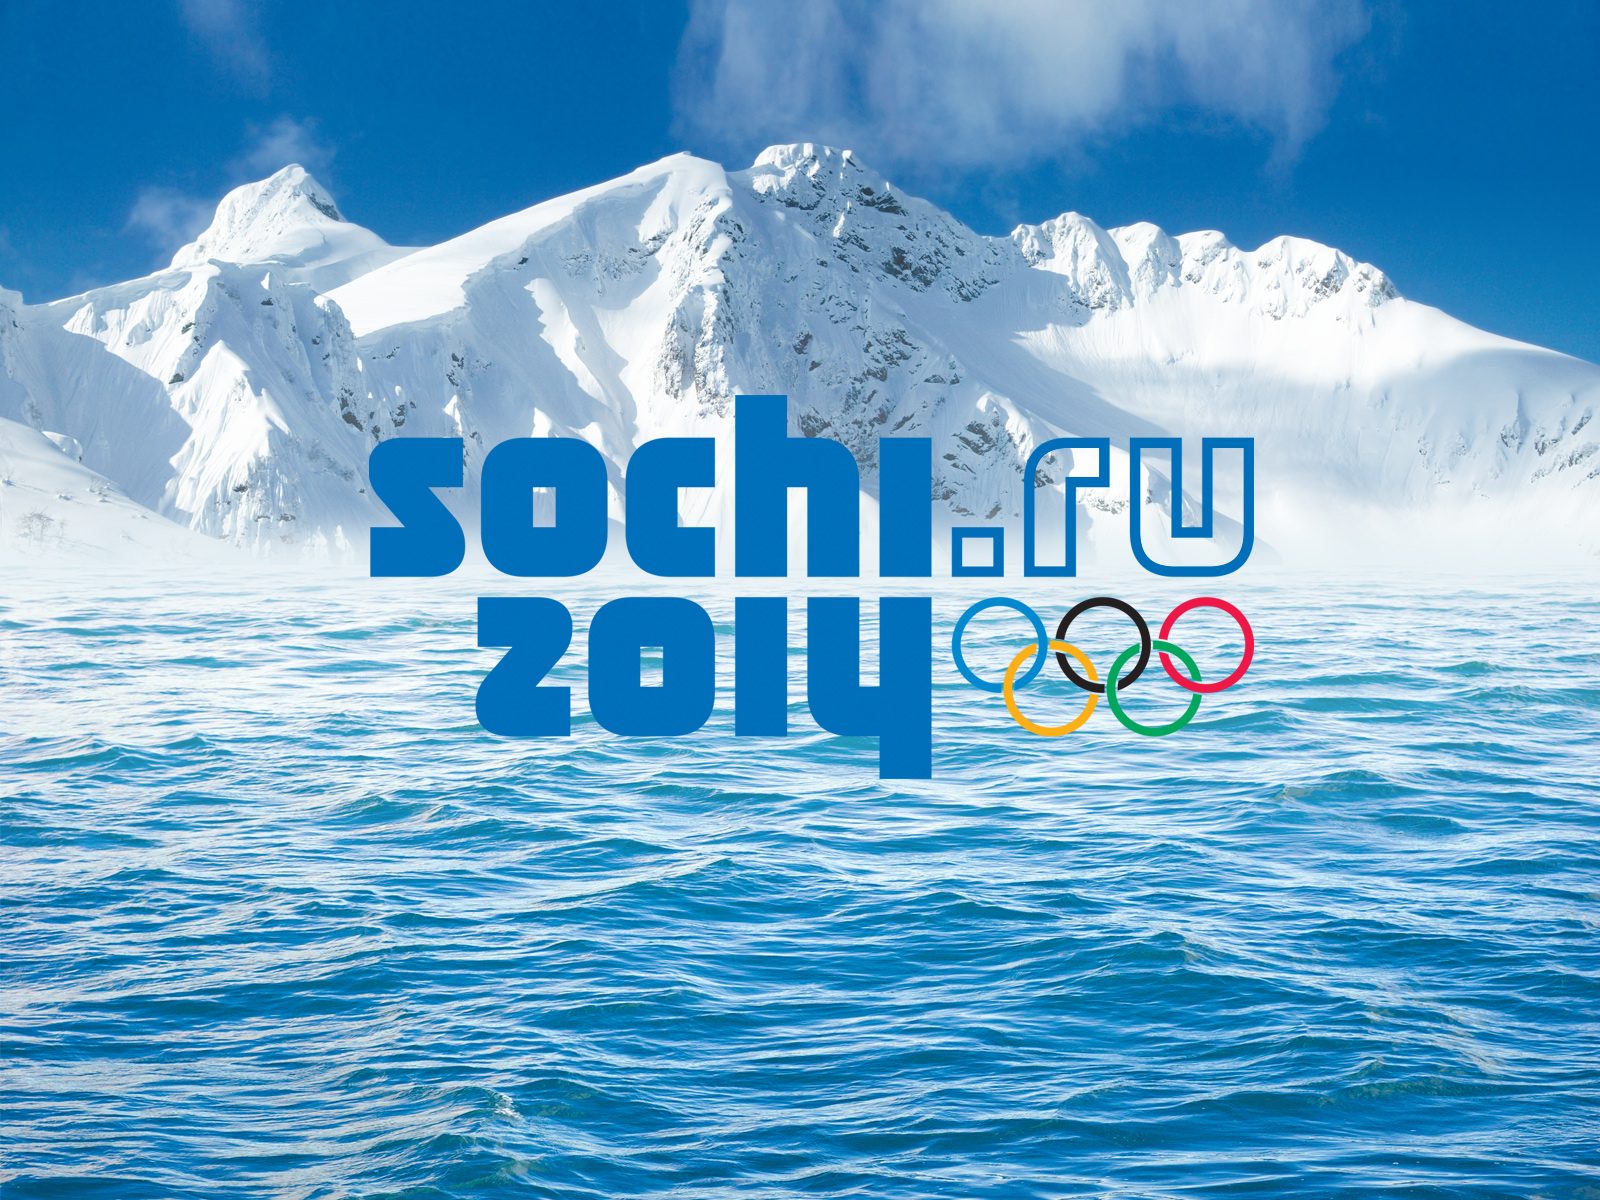 With the Sochi 2014 Winter Olympics fast approaching and the final qualification events pretty much wrapped up, we thought it would be a good time to round ...